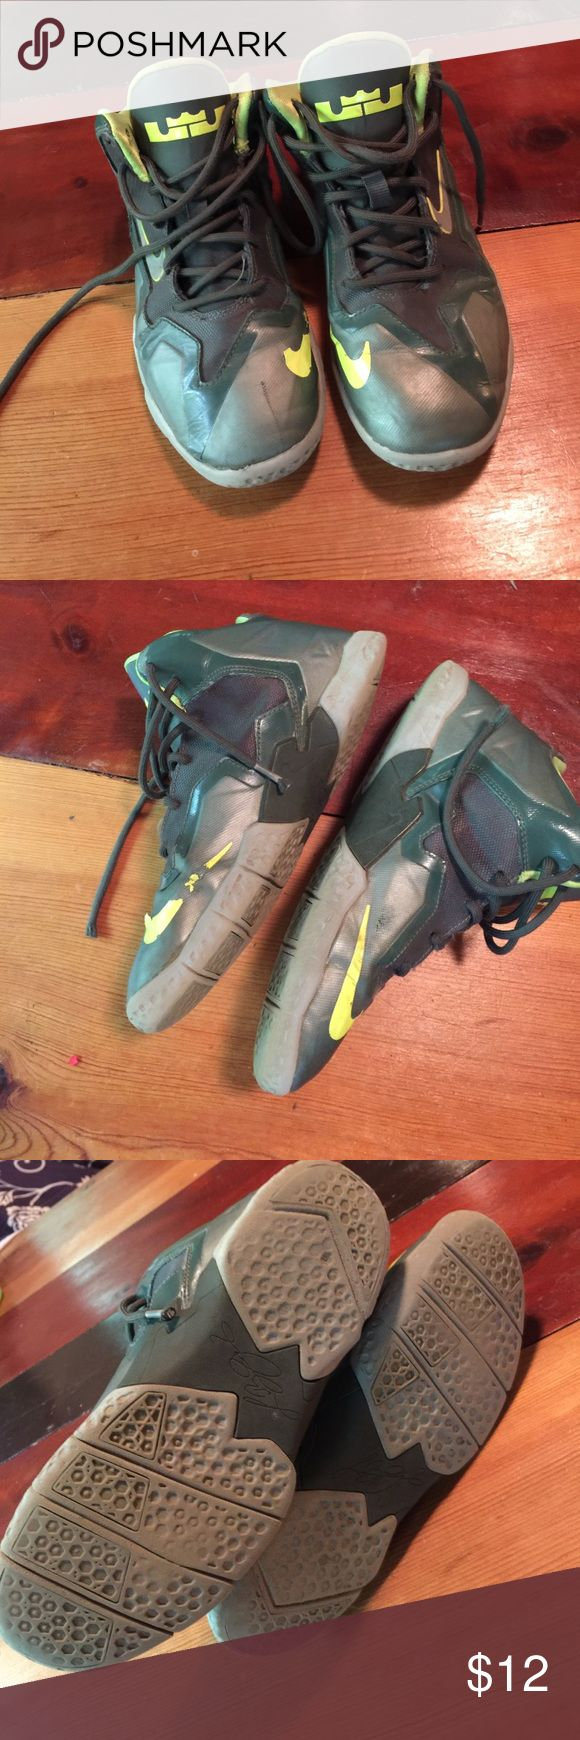 Roughed Up Lebrons Size 3 Boys Lebrons Janes Hi-Tops.  Grey and green with yellow details (think Univ. of Oregon palette).  Worn and priced to go! Nike Shoes Sneakers